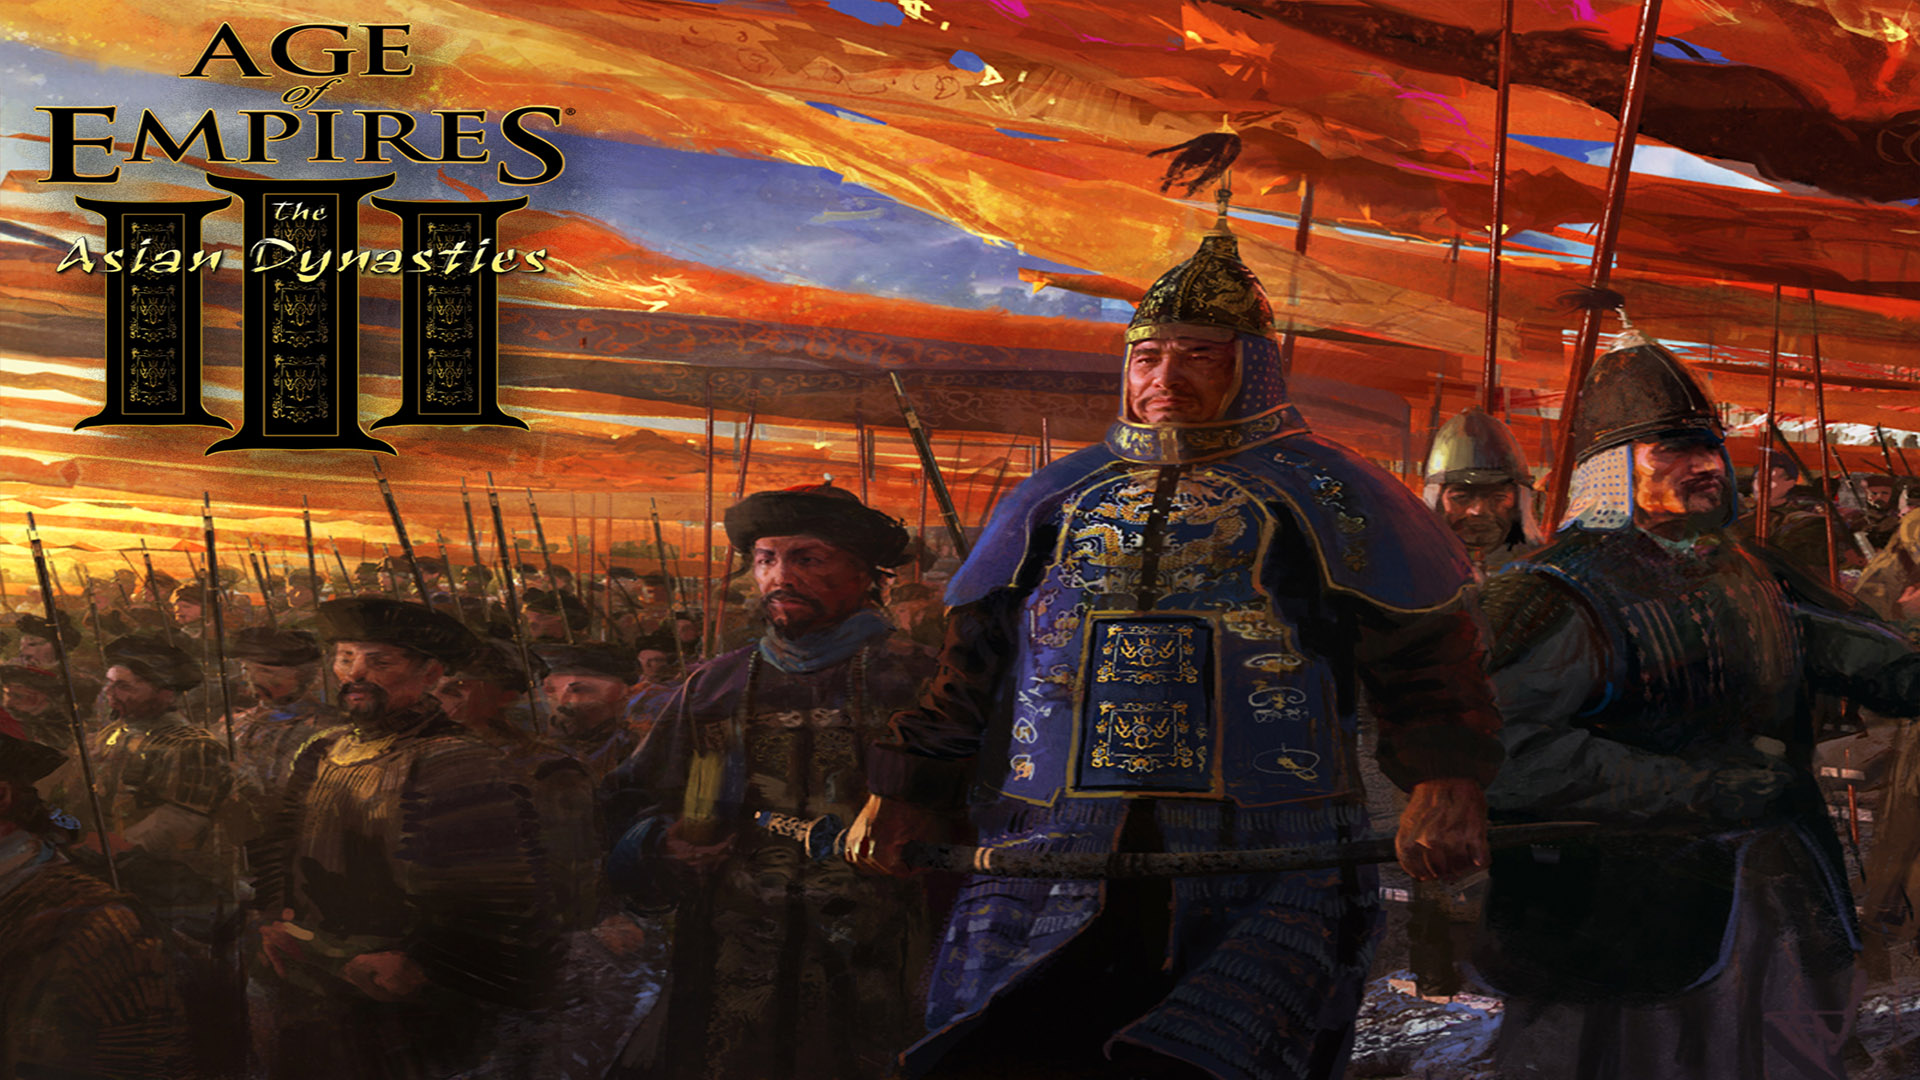 Age Of Empires Wallpaper: Age Of Empires III: The Asian Dynasties HD Wallpaper